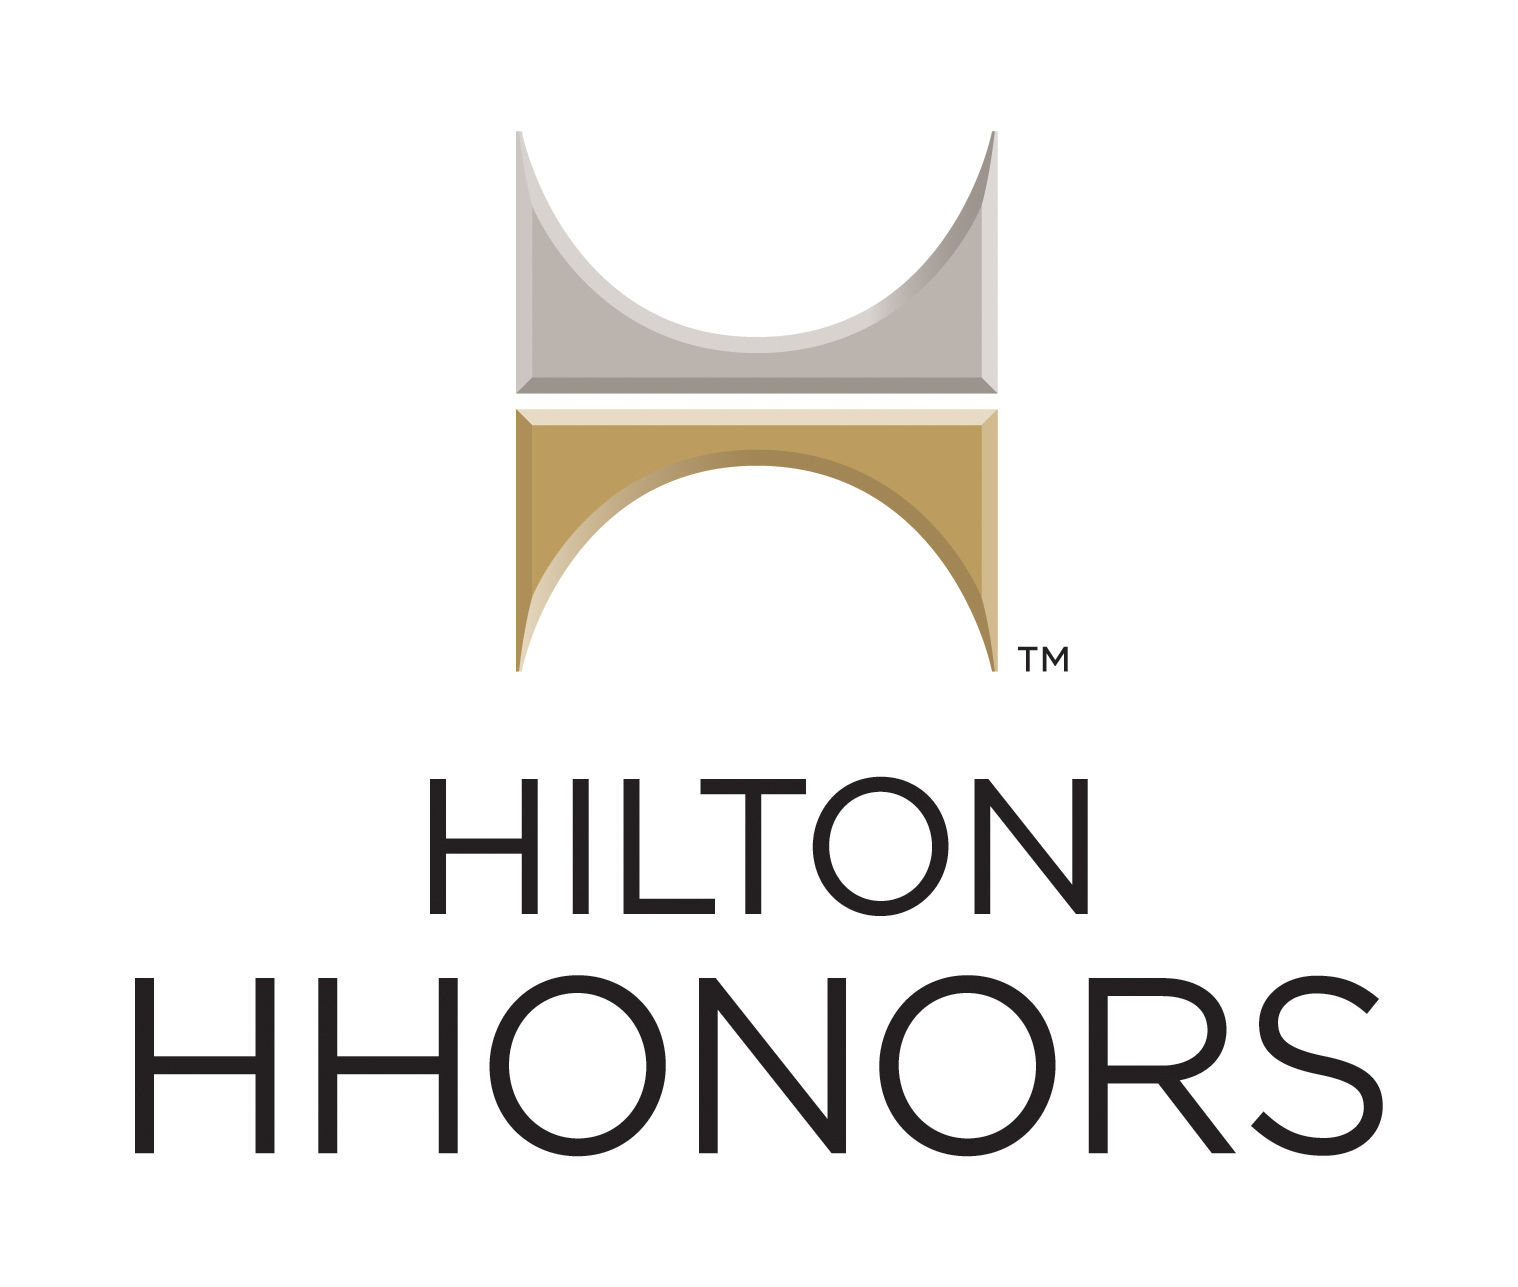 Hilton HHonors Program: Review of the Rewards